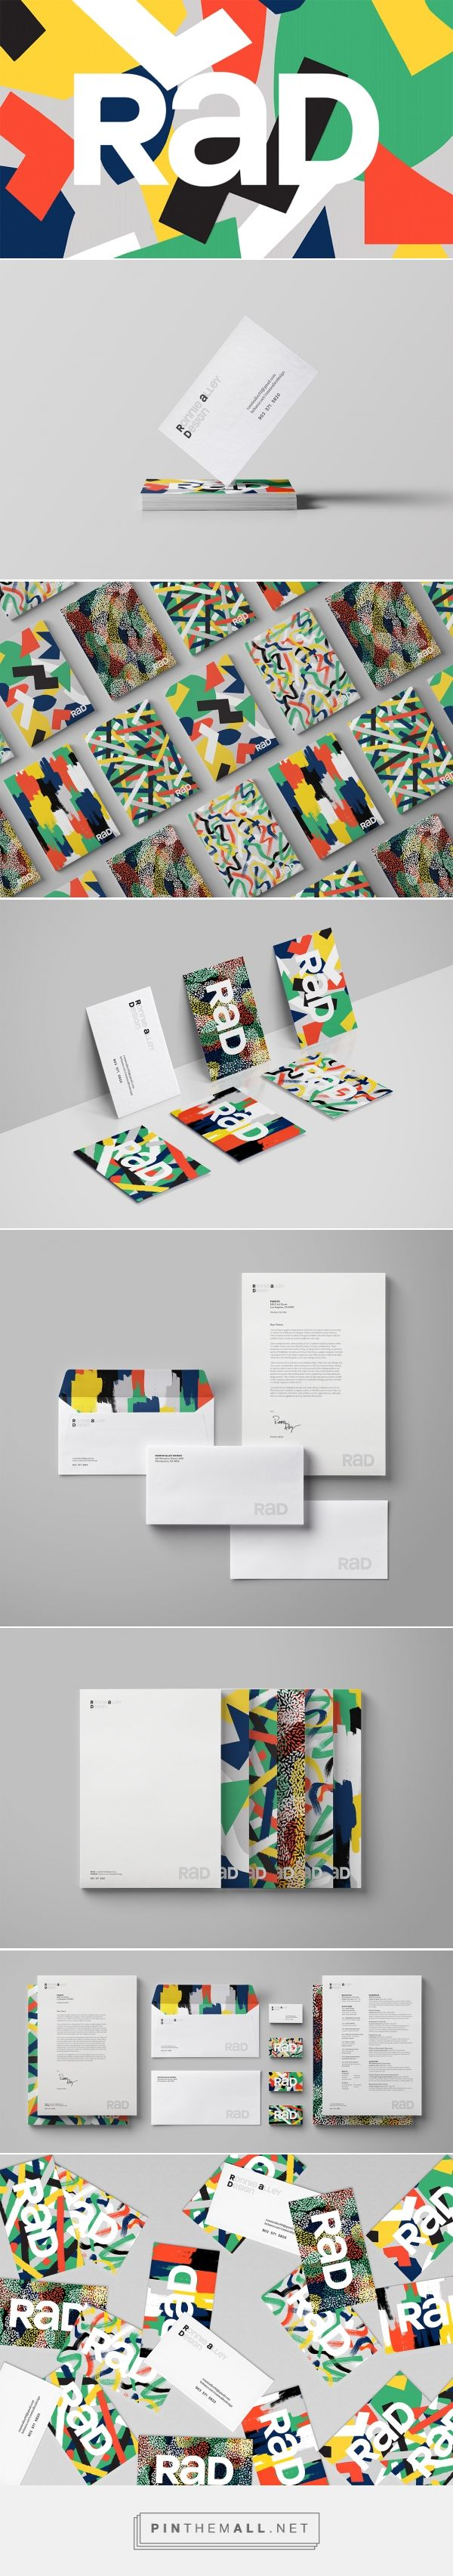 RAD Personal Branding by Ronnie Alley   Fivestar Branding Agency – Design and Branding Agency & Curated Inspiration Gallery